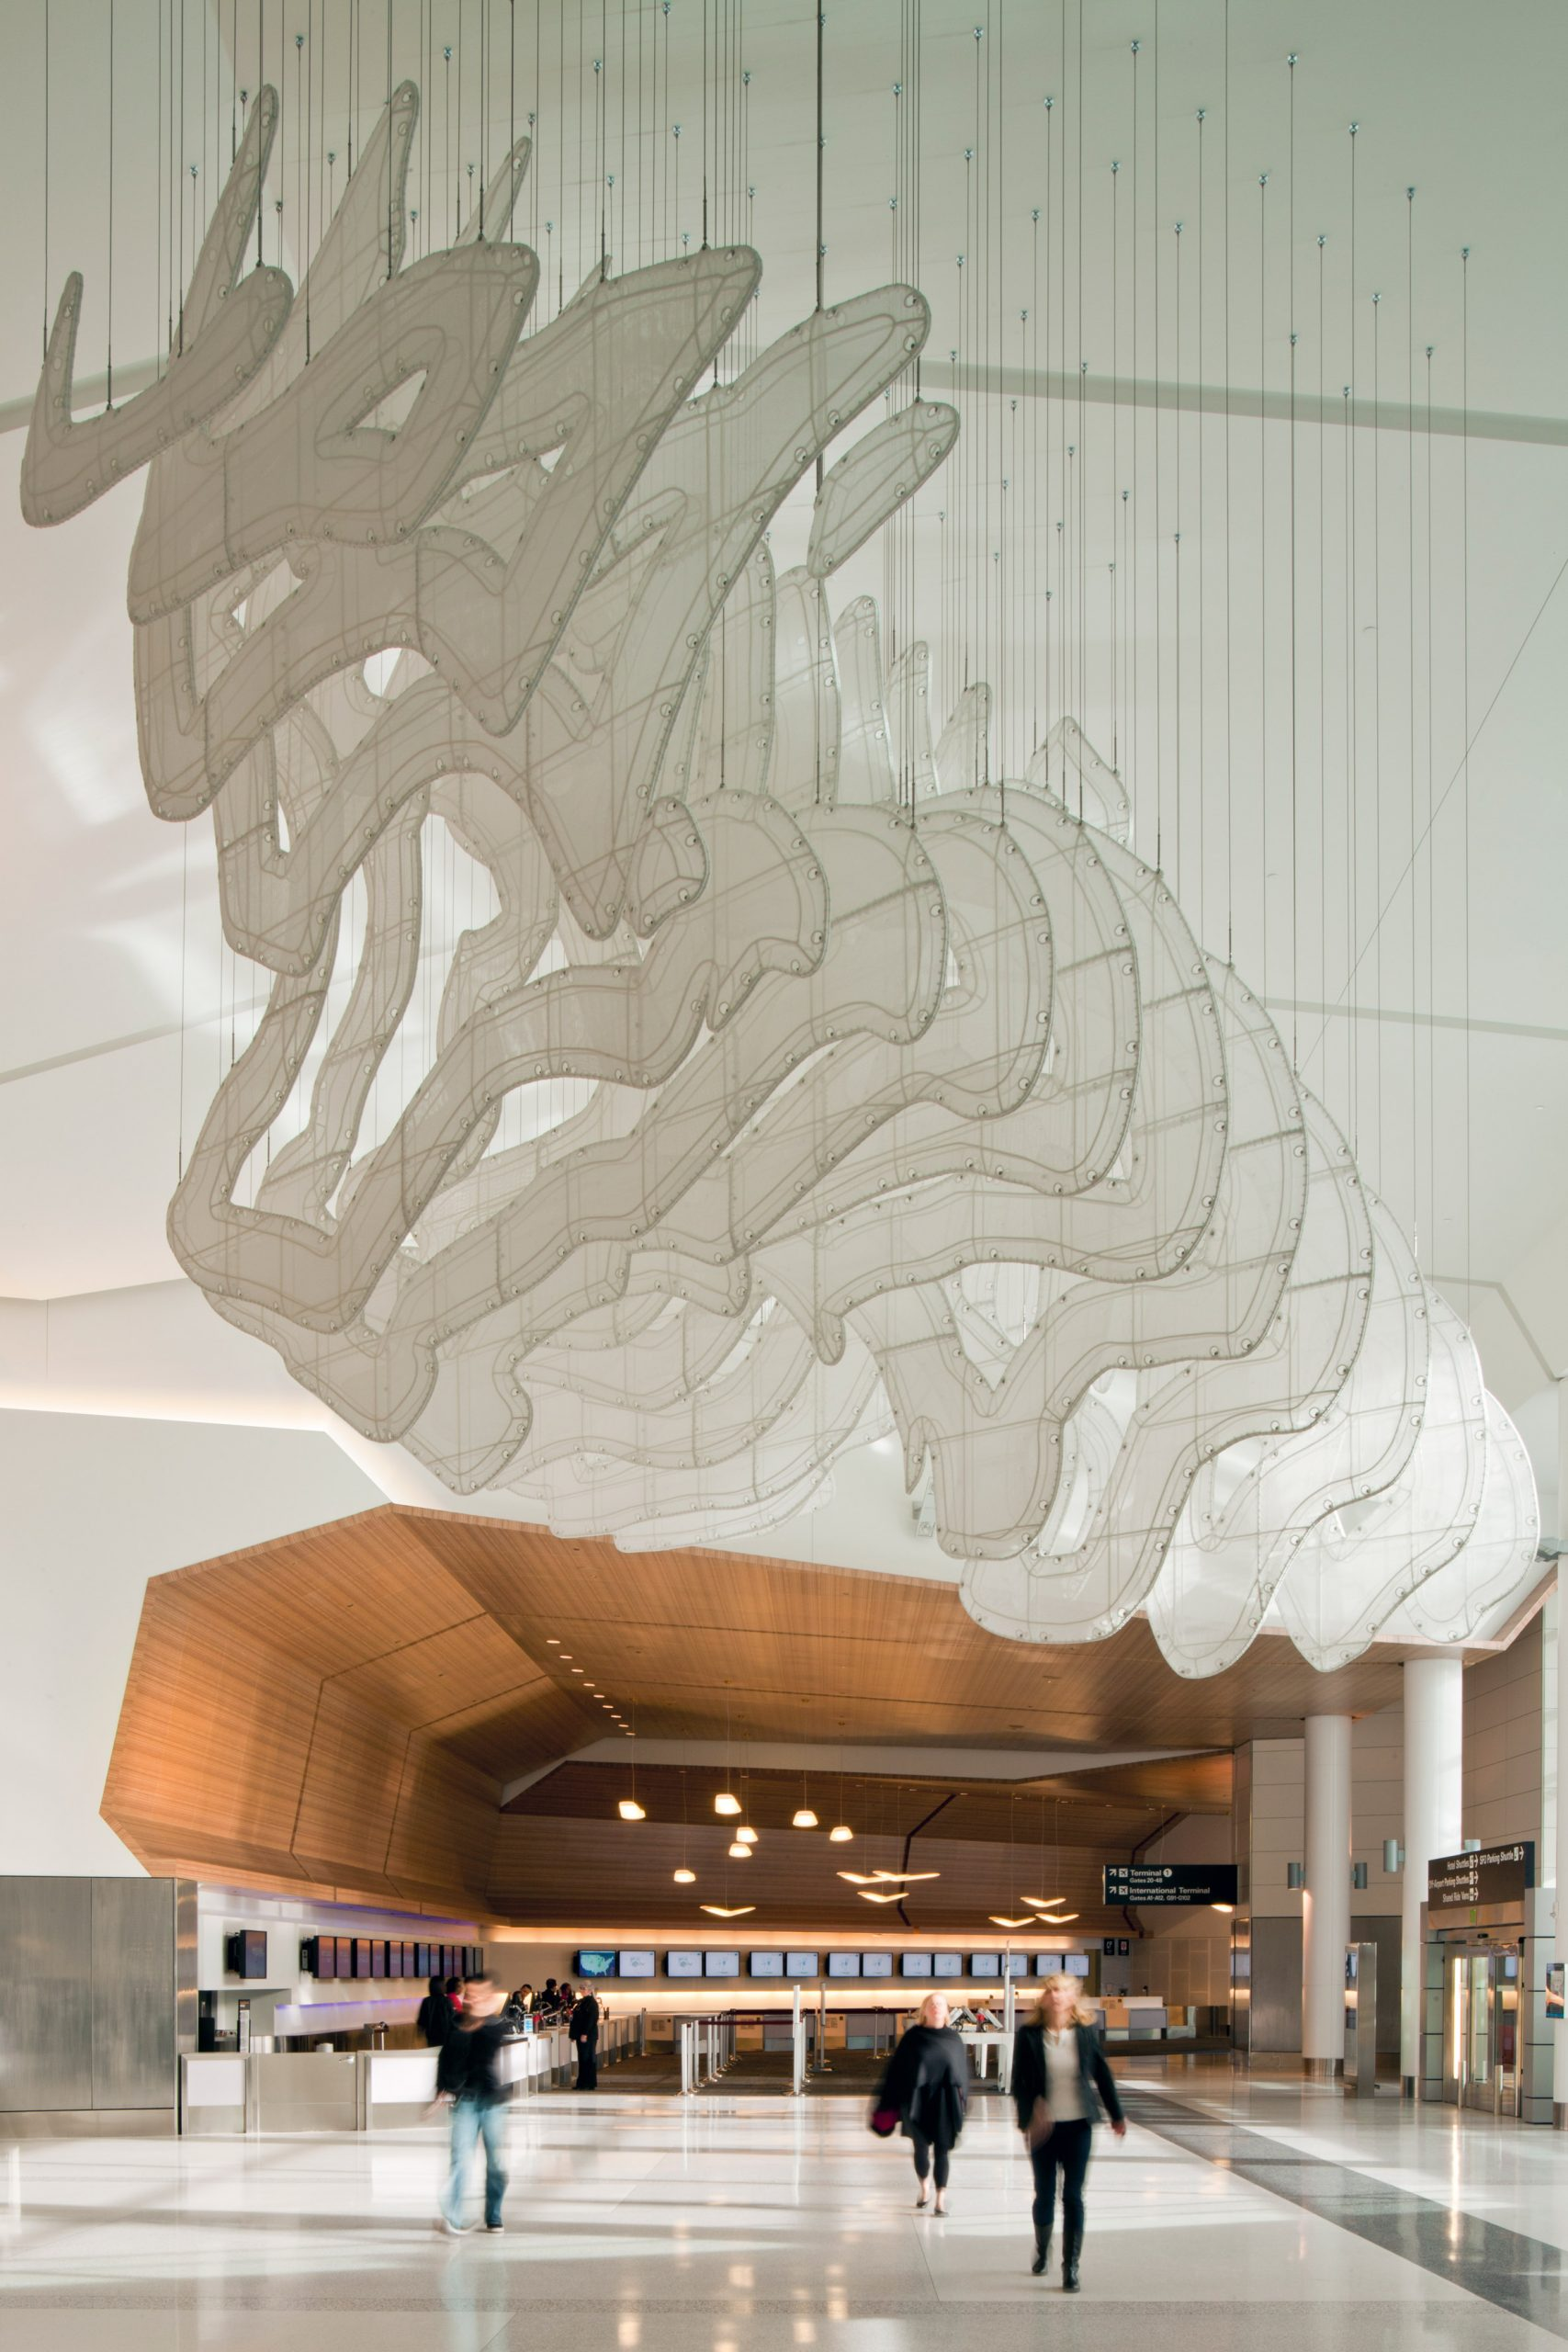 San Francisco airport interiors by Gensler